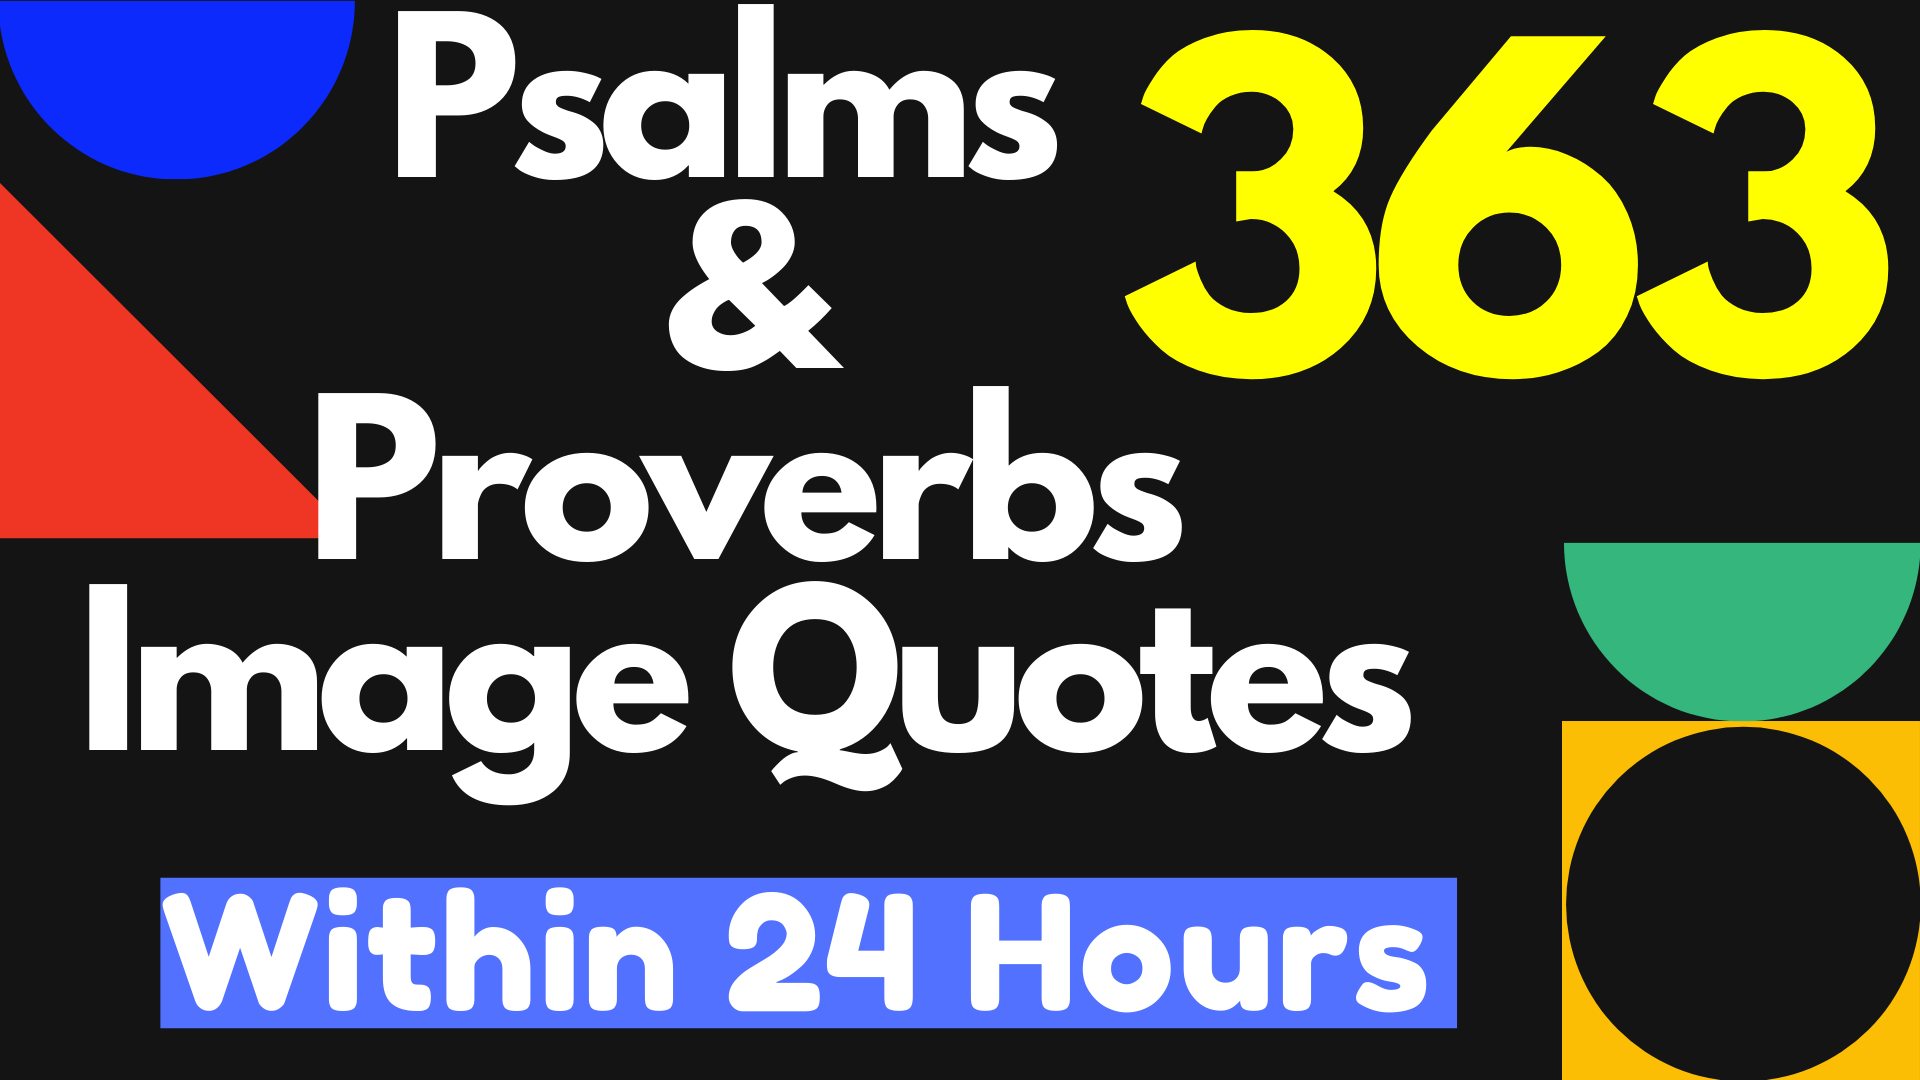 Inspirational Bible Psalms and Proverbs Image Quotes